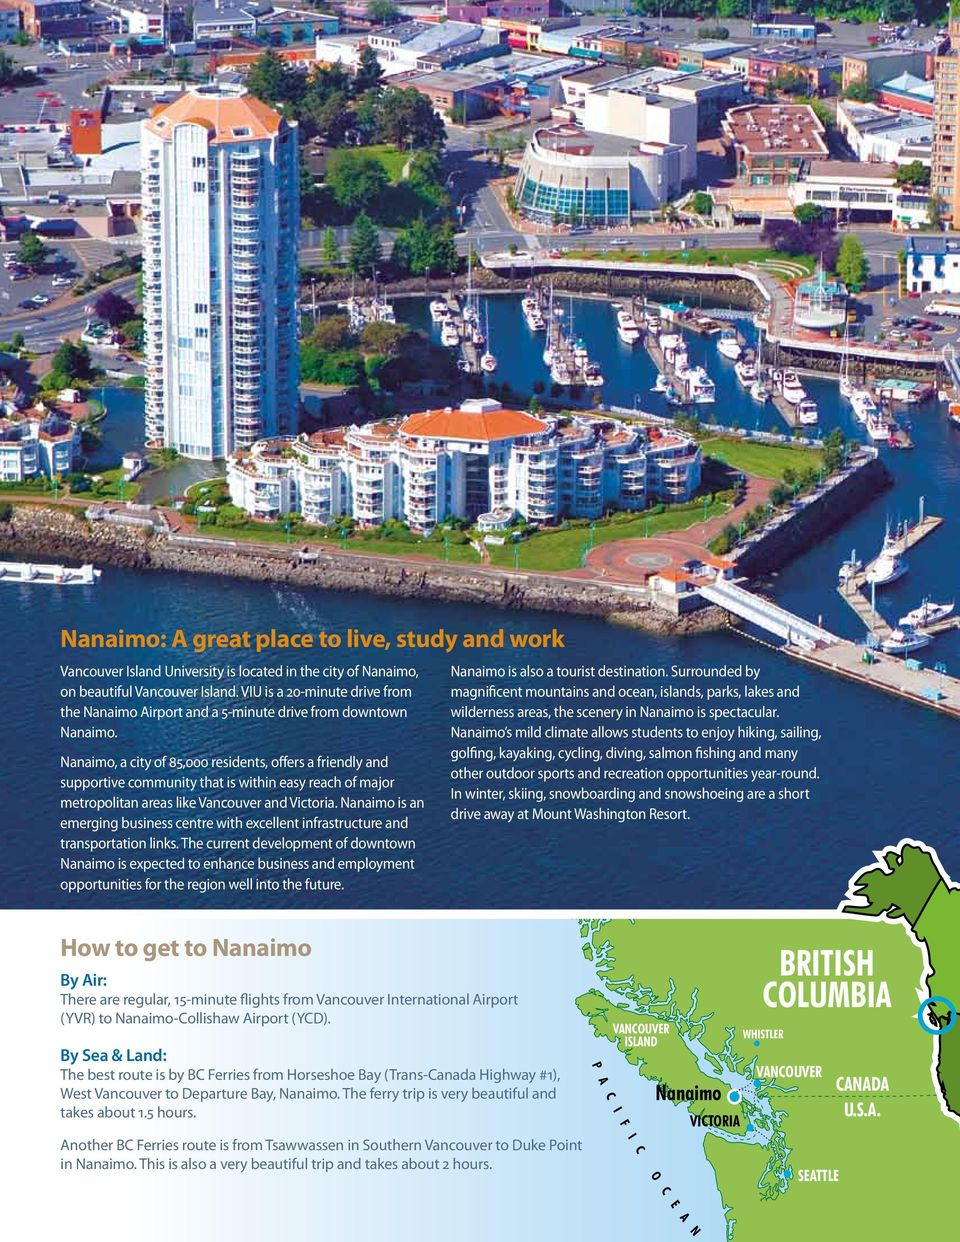 Nanaimo, a city of 85,000 residents, offers a friendly and supportive community that is within easy reach of major metropolitan areas like Vancouver and Victoria.